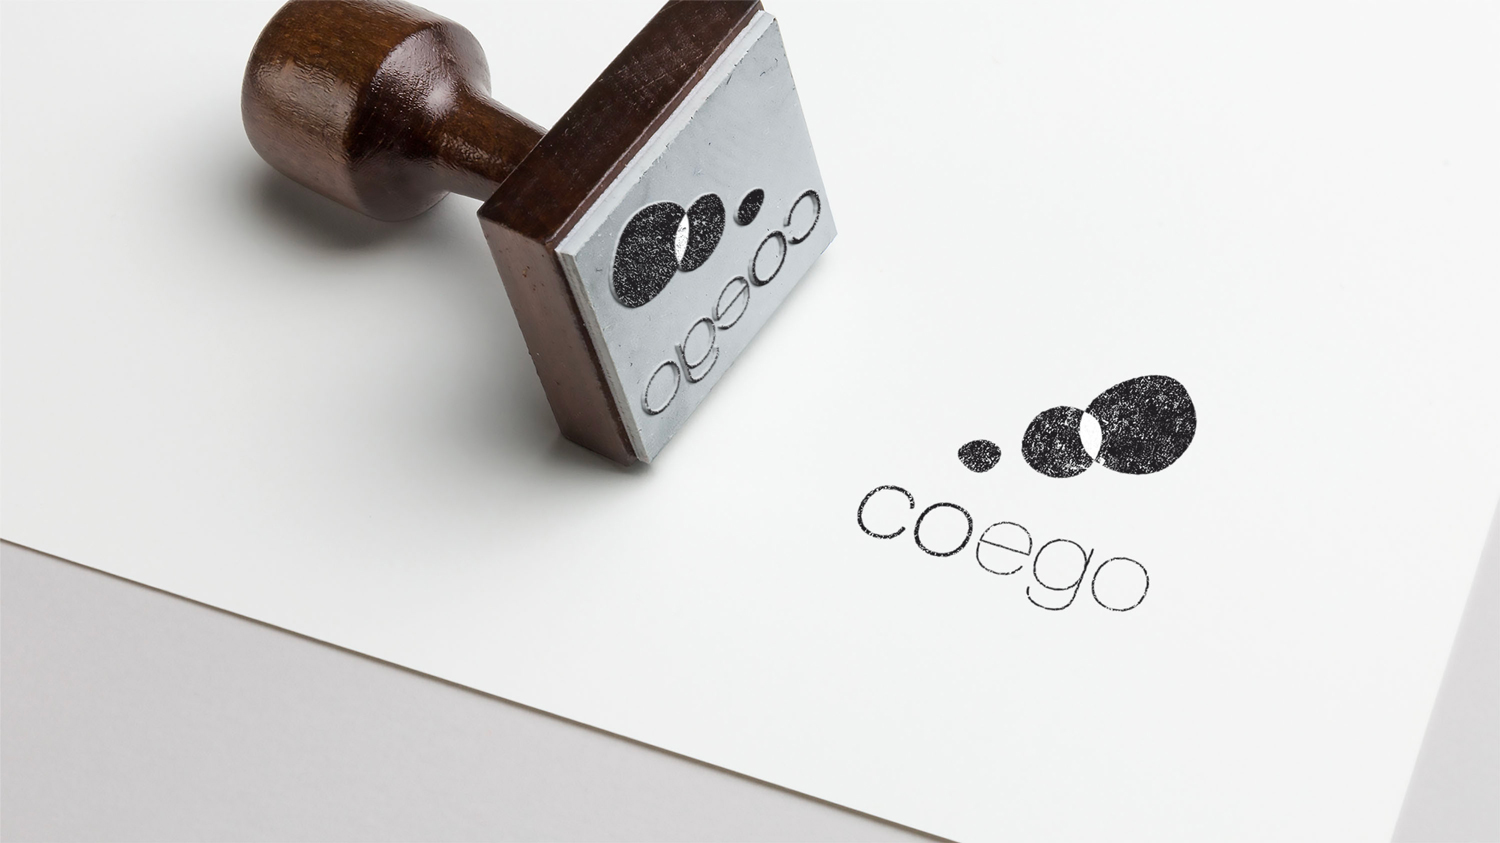 identite visuelle logo coego coaching for young people